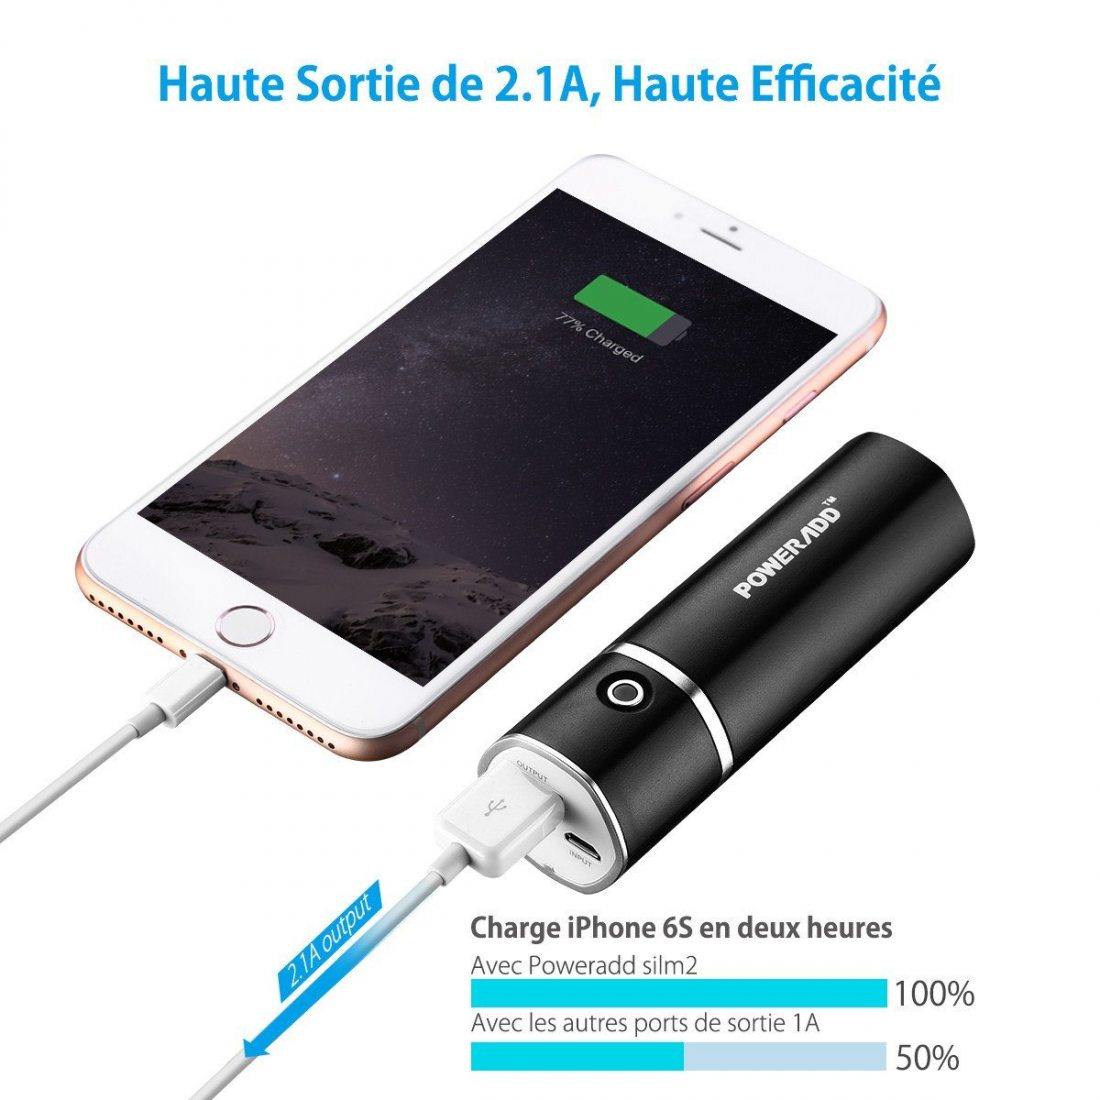 poweradd slim2 5000mah chargeur portable batterie de secours externe pour t l phone potable. Black Bedroom Furniture Sets. Home Design Ideas